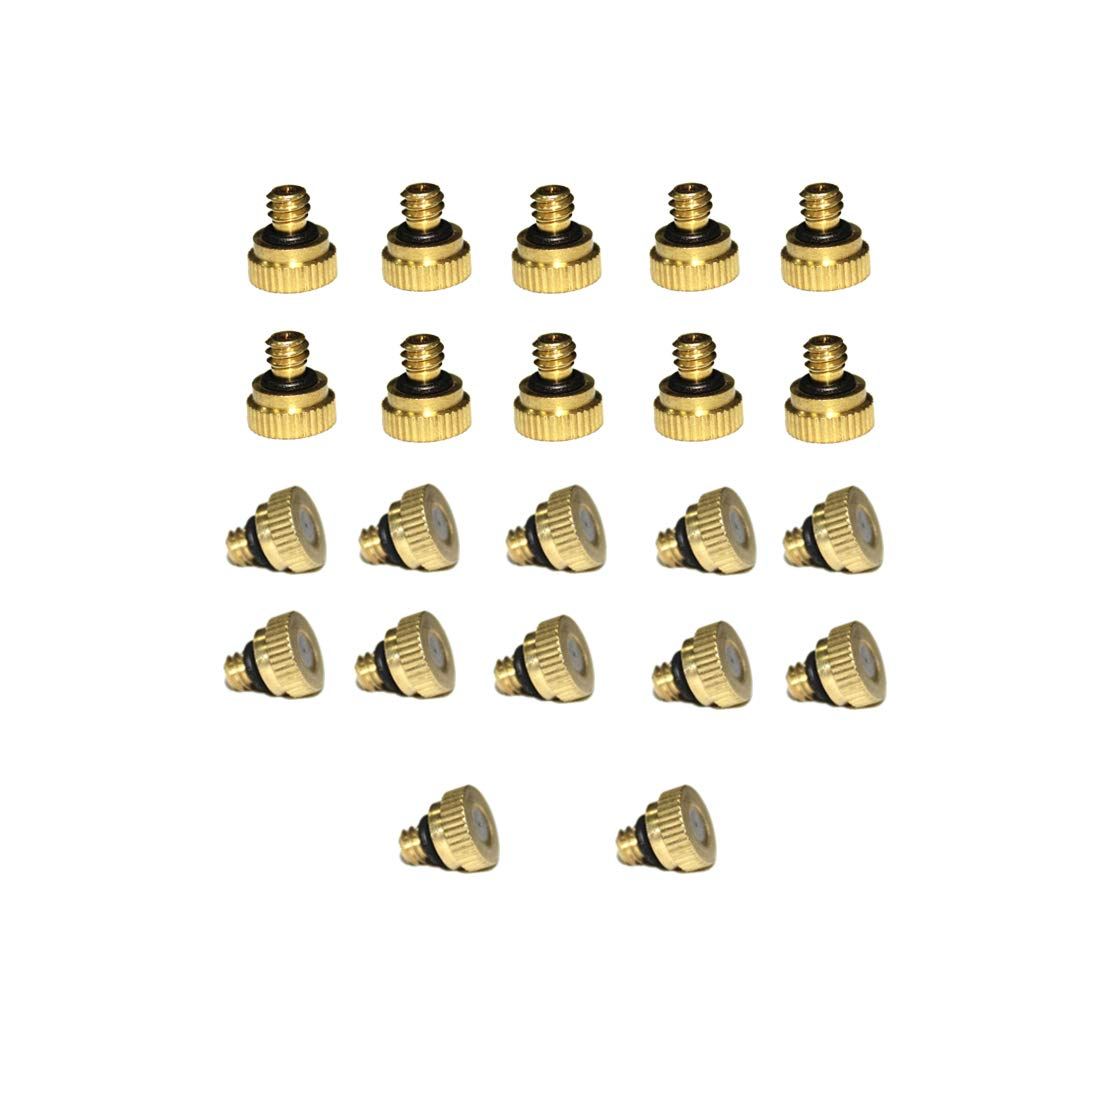 Balidao - 0.4mm 22pcs/Pack Orifice Thread 10/24 UNC Mosquito Water Stainless Steel Mist Nozzle, Homemade Micro Anti Drip Brass Water Misting Nozzles, Mister Nozzle For Outdoor Cooling System